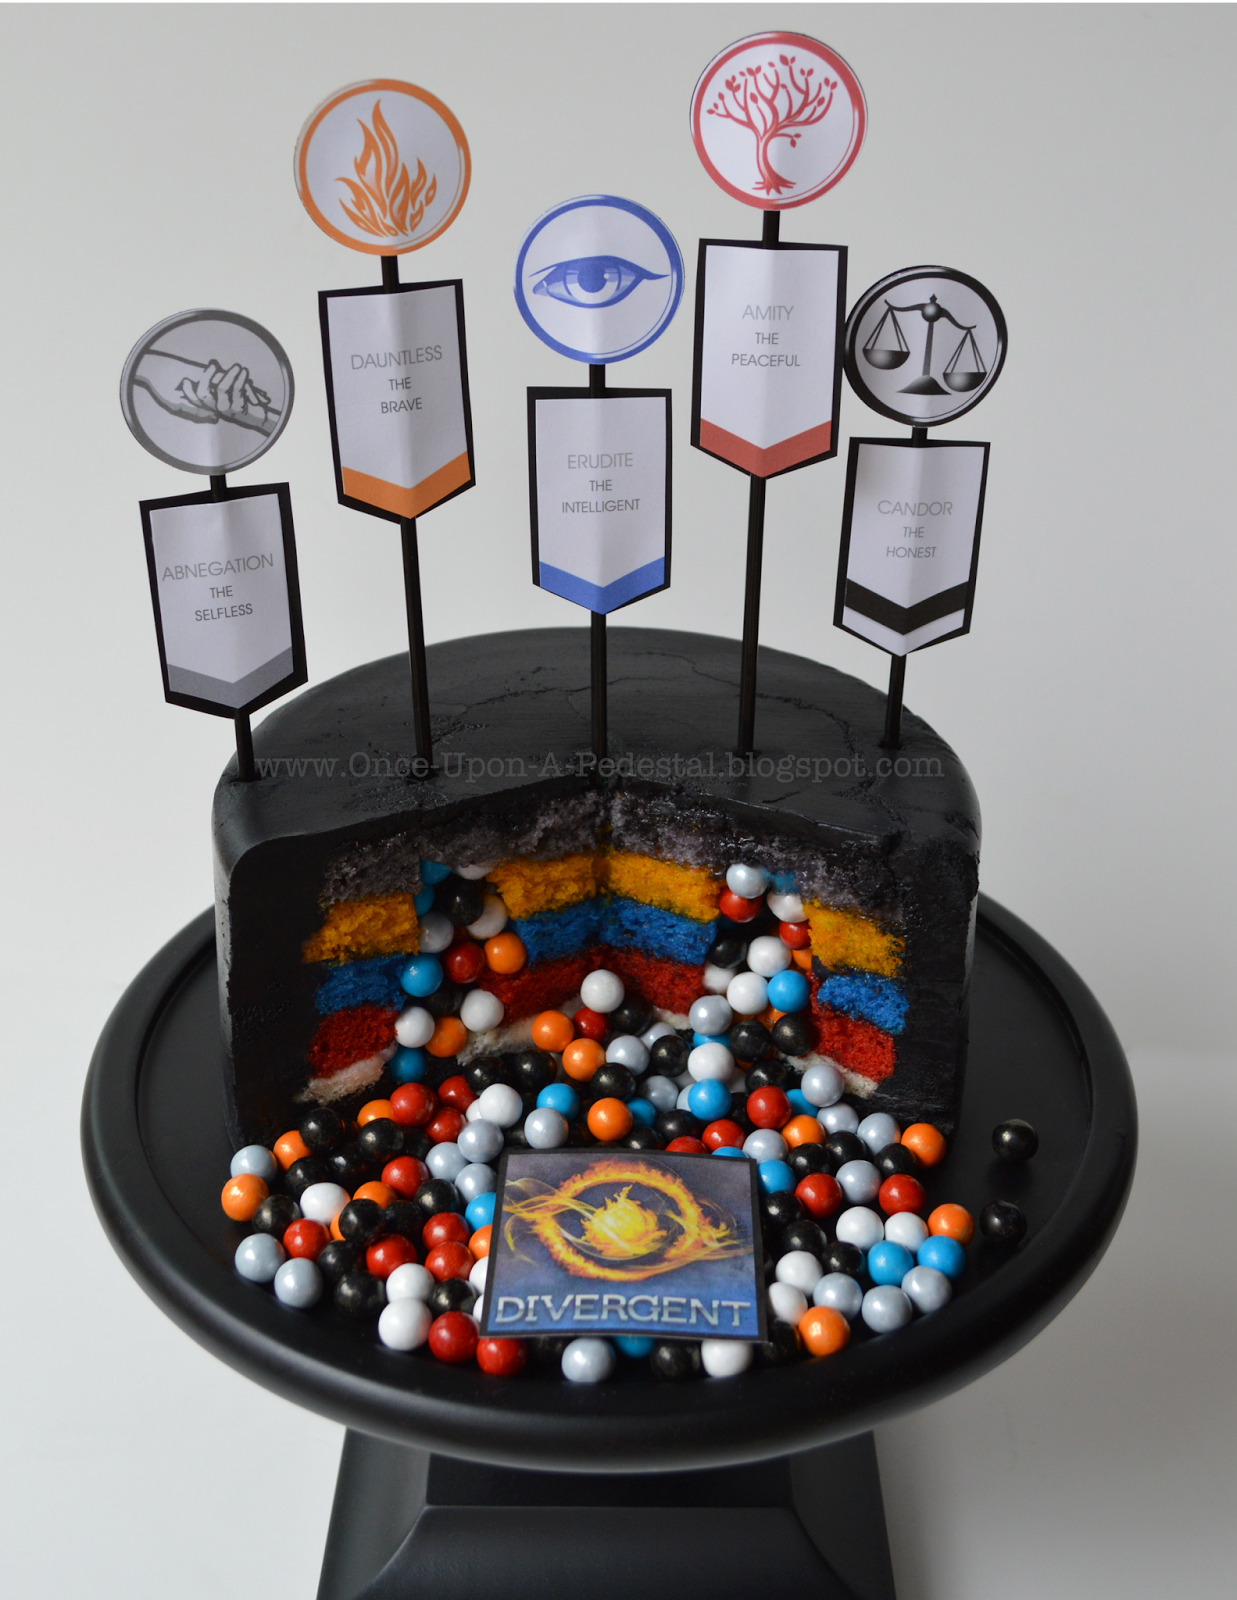 Birthdays Surprise Inside Factions Divergent Cake